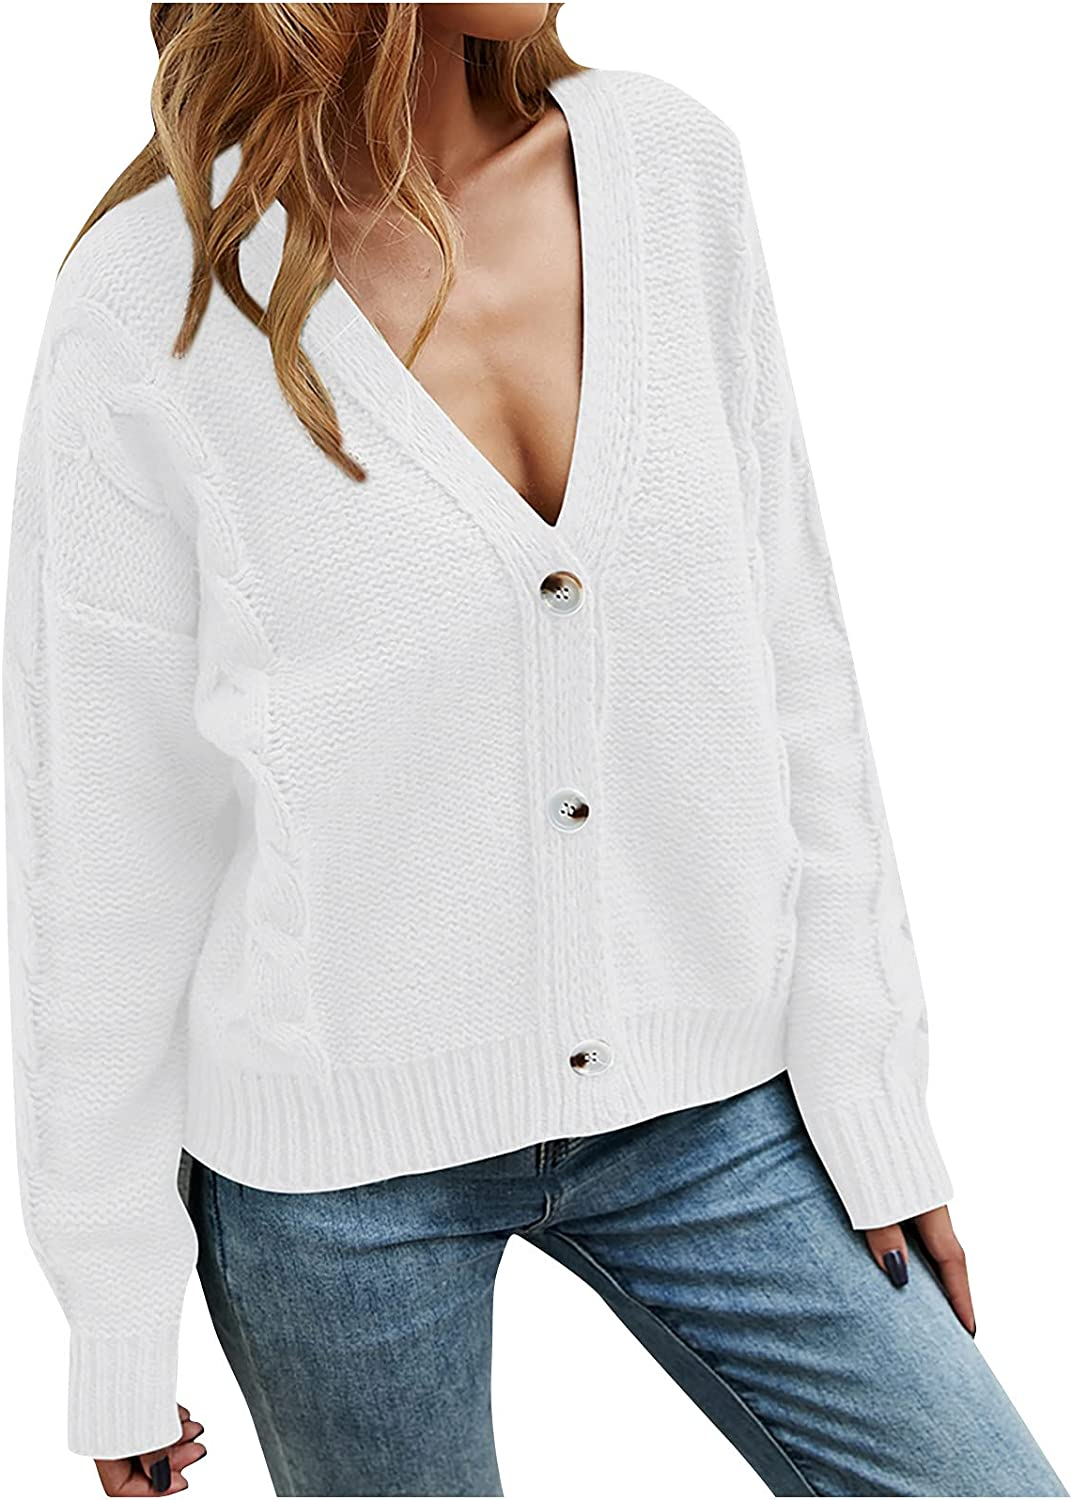 RFNIU Womens V Neck Cardigan Fashion Cable Knit Sweater Open Front Chunky Long Sleeve Buttons Kimono Tops Outerwear